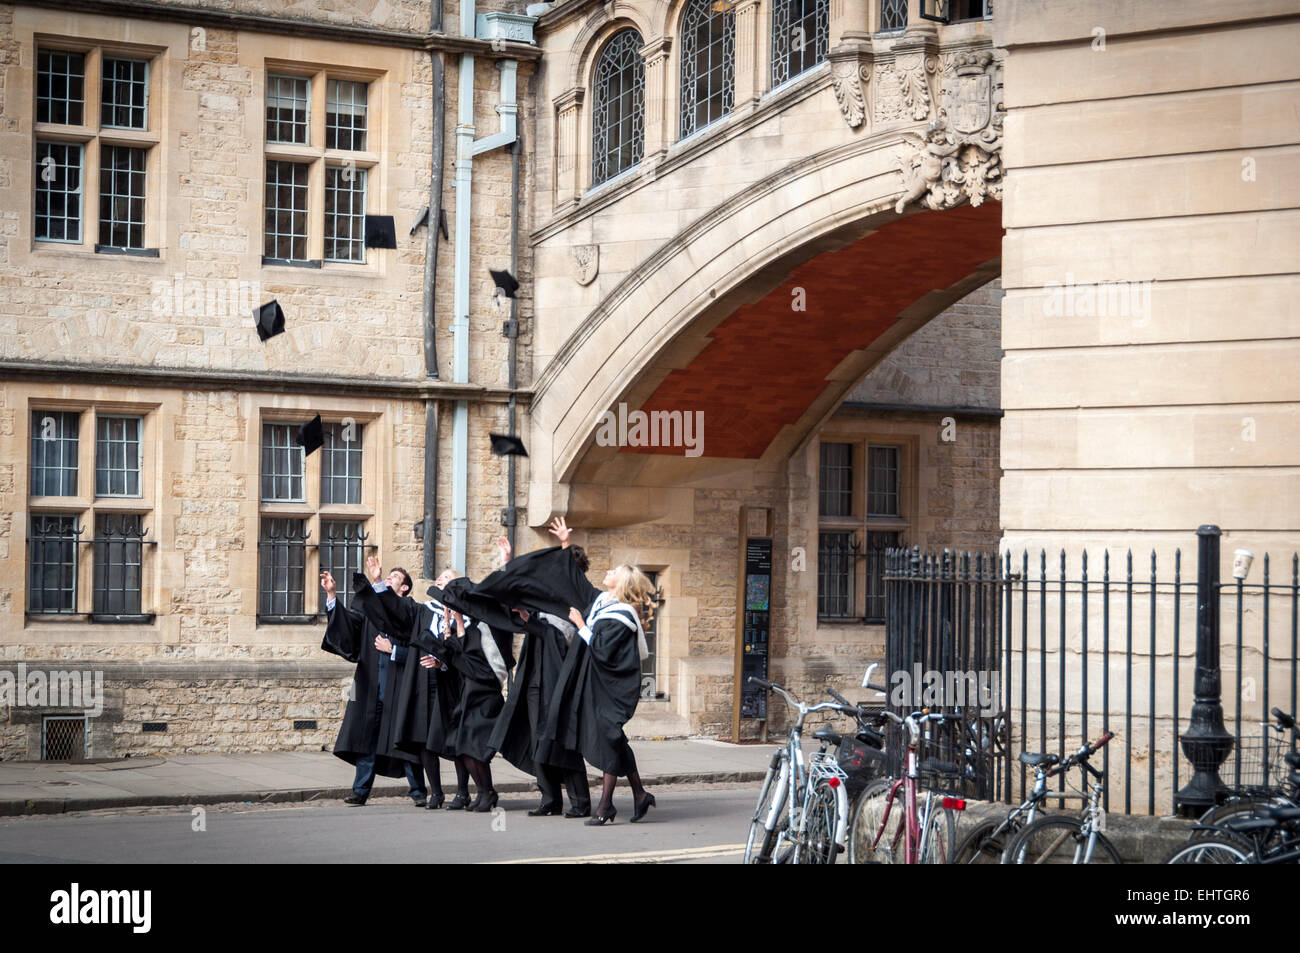 Oxford University students celebrate the end of academic year, Oxford, England Stock Photo